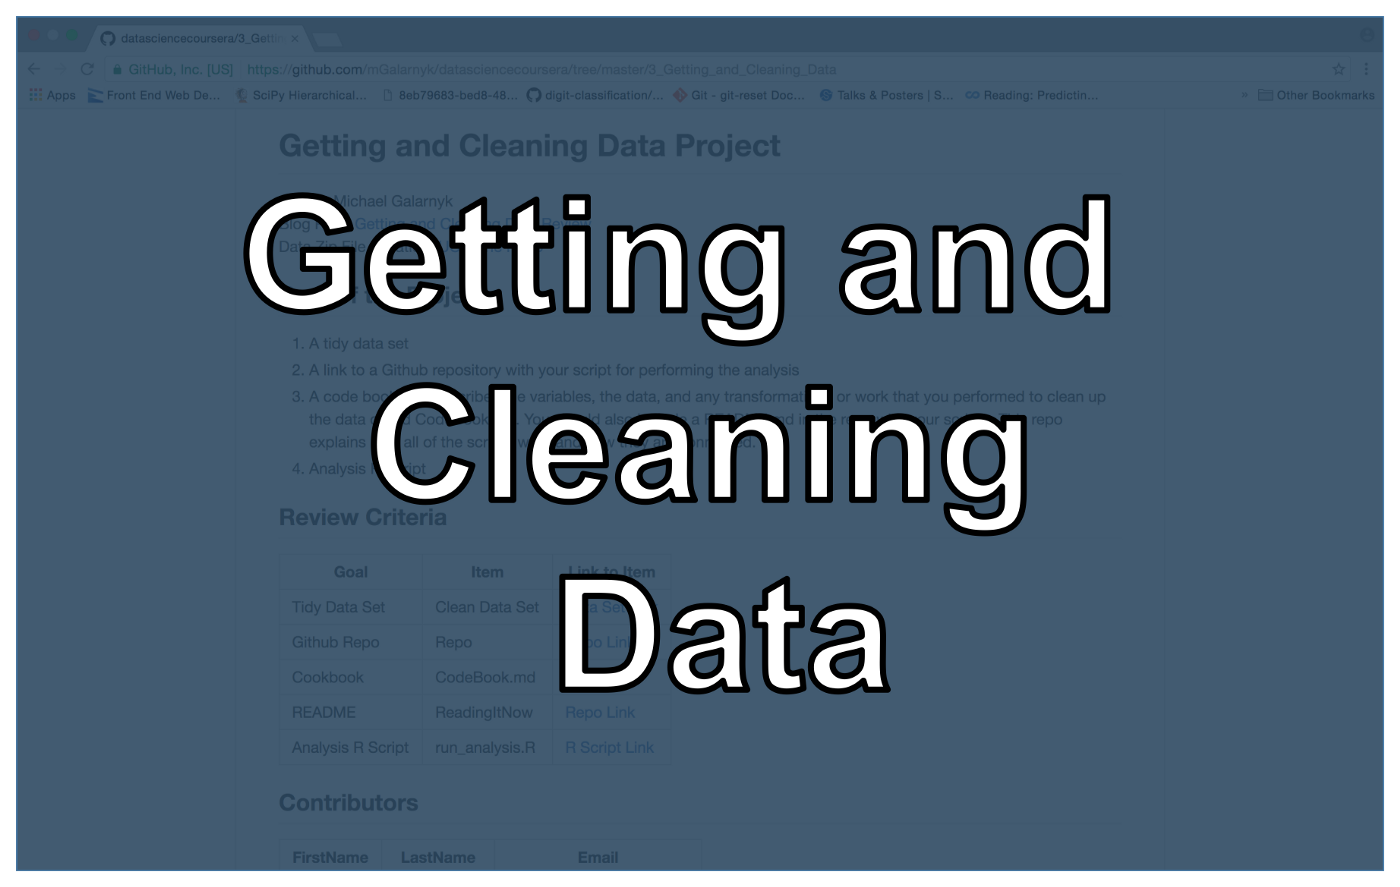 Getting and Cleaning Data (JHU Coursera, Course 3) - Towards Data